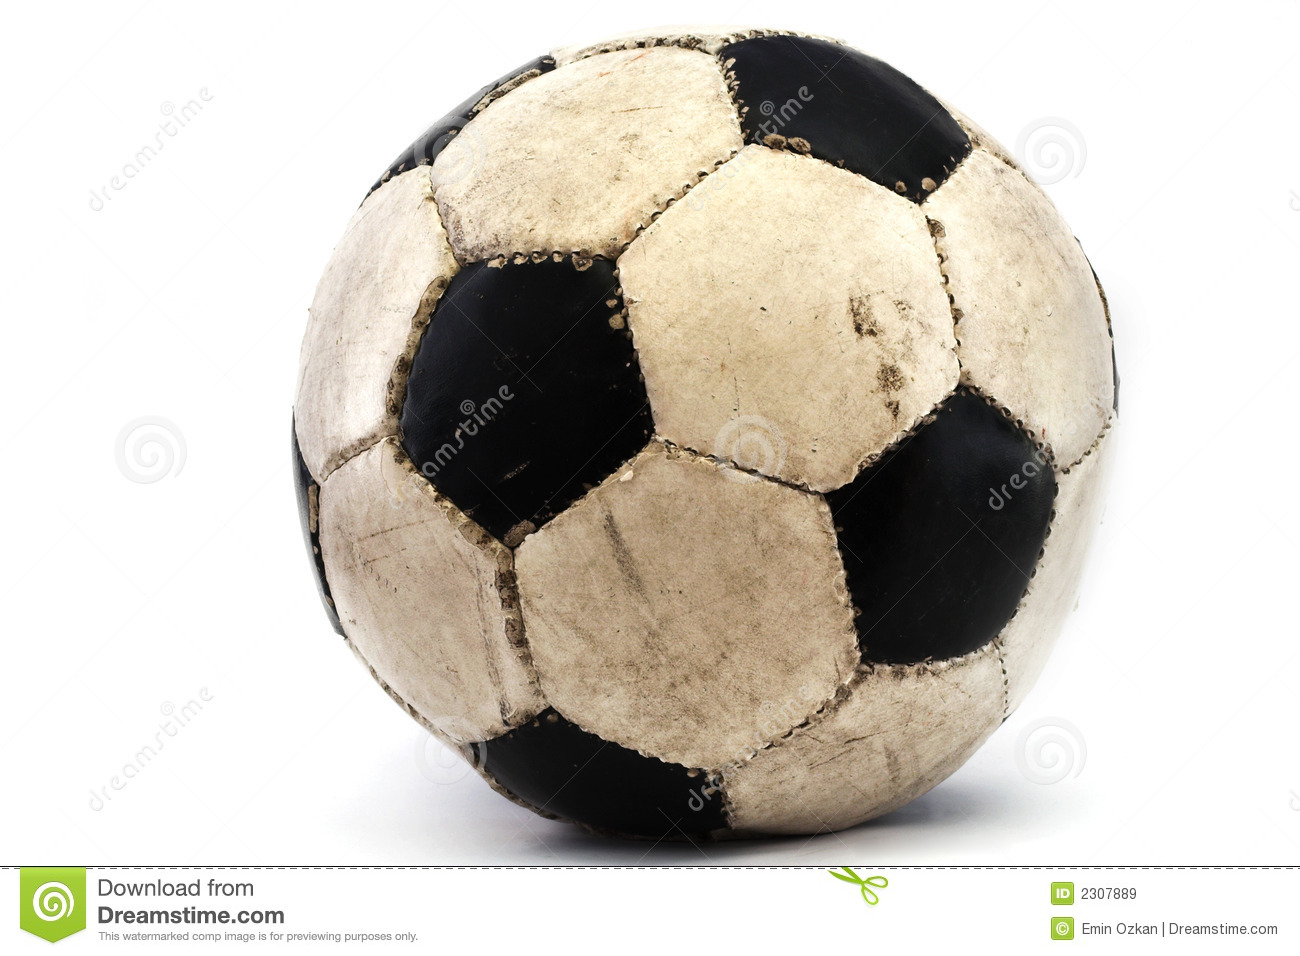 Soccer Ball Clipart Black and White  123FreeVectors